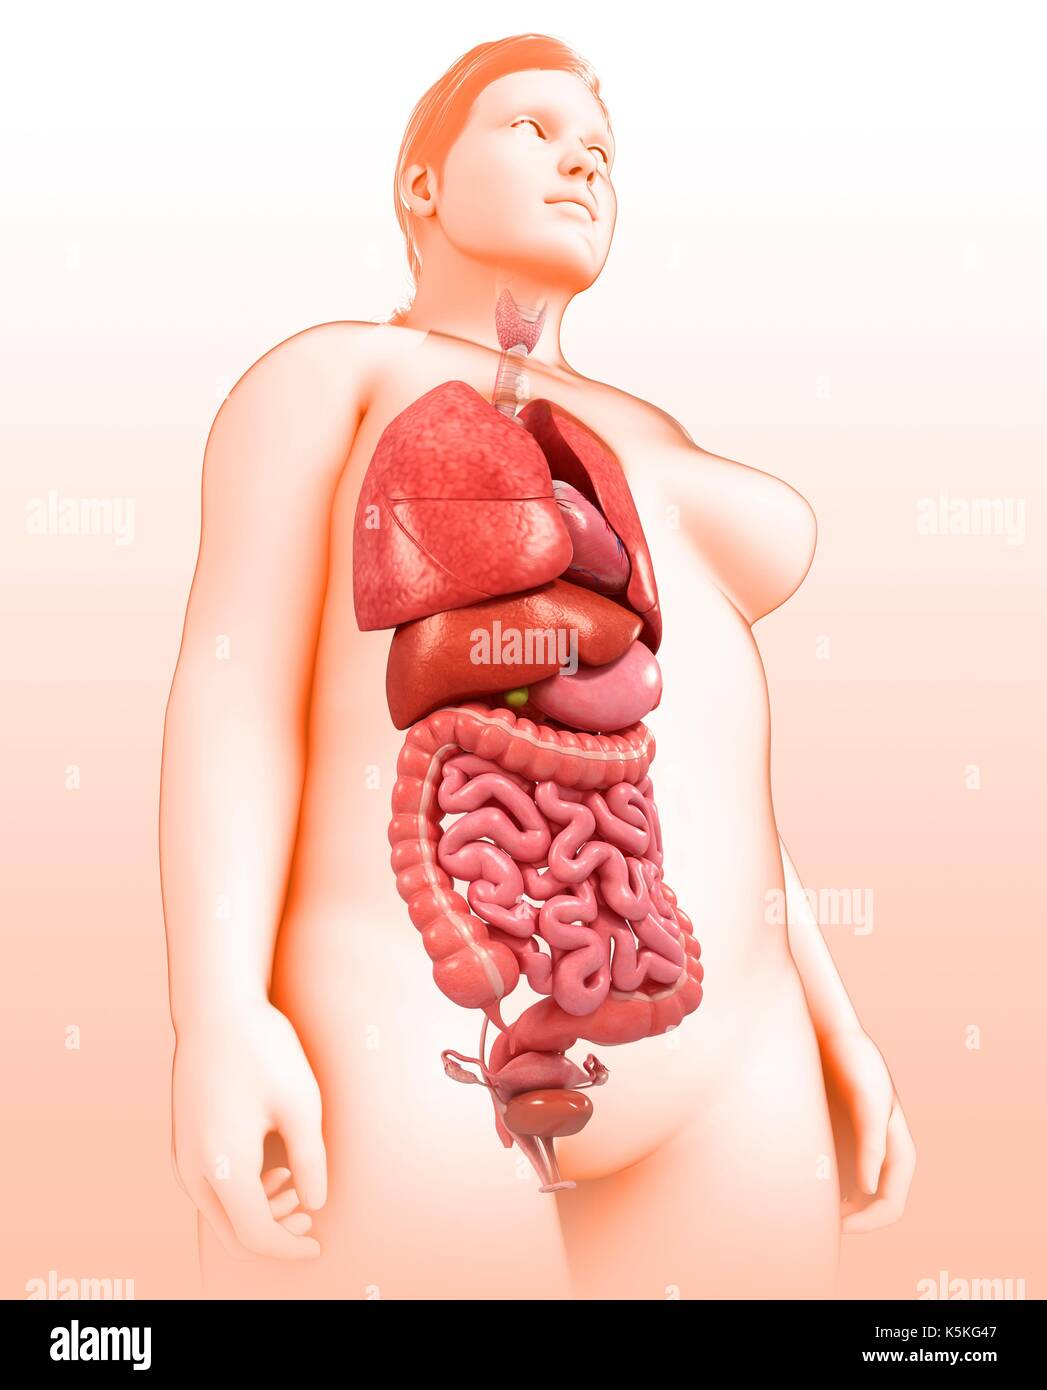 Illustration Of Female Body Organs Stock Photo 158396343 Alamy